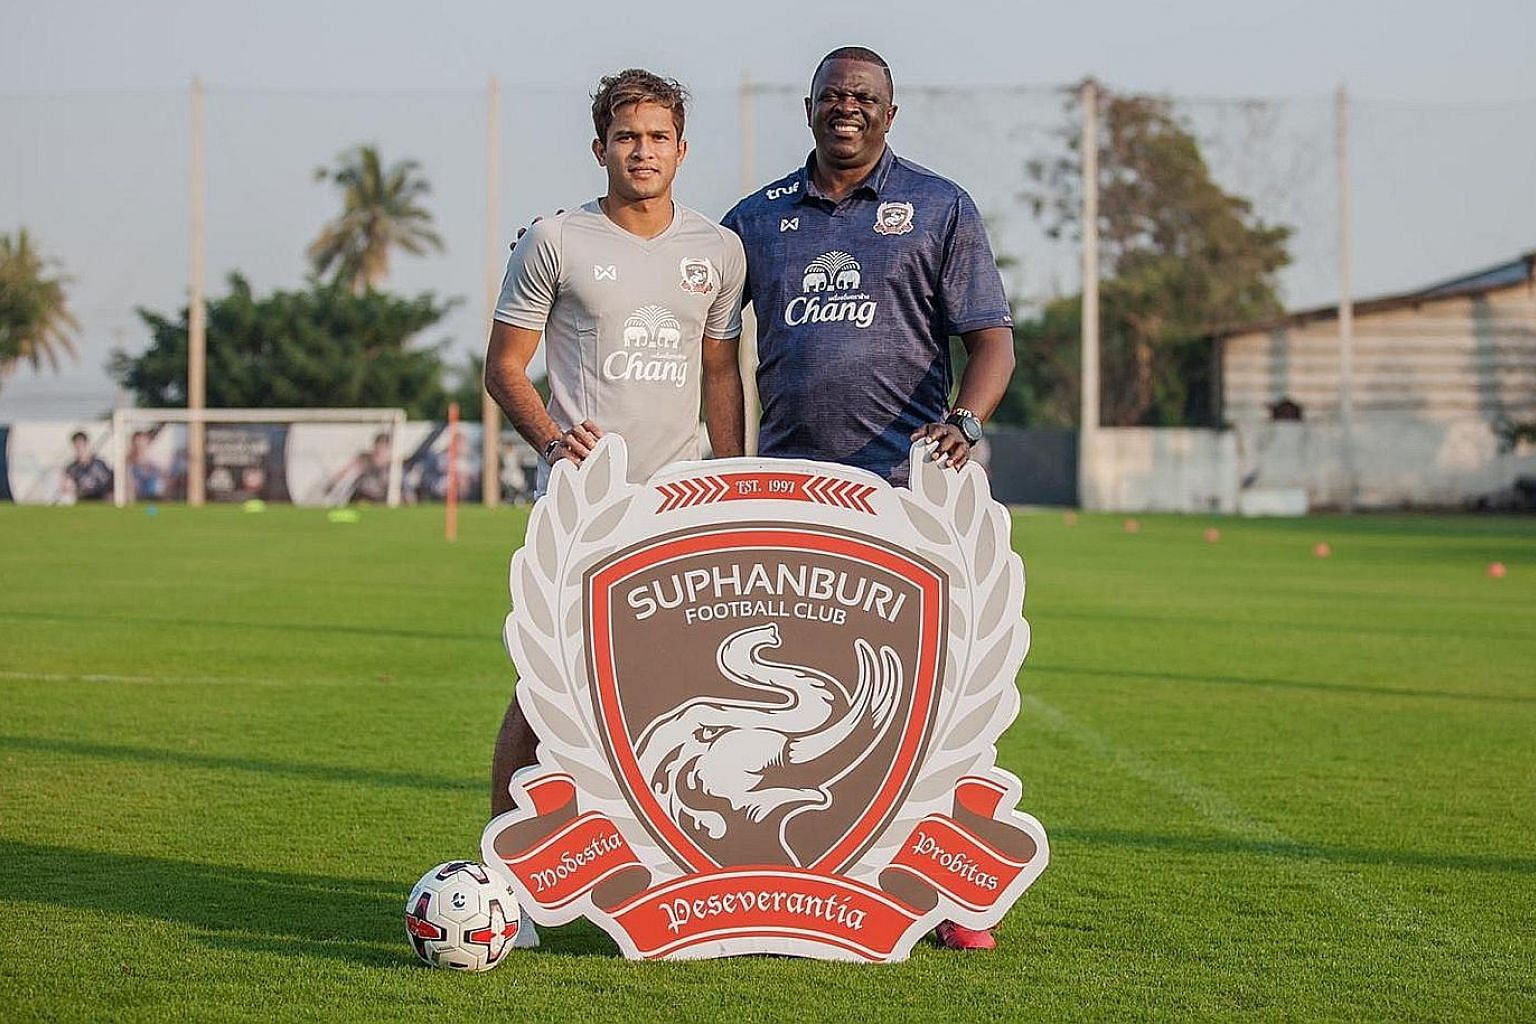 Singapore midfielder Zulfahmi Arifin with his new coach Adebayo Gbadebo after signing for Thai League 1 side Suphanburi. The former Hougang captain will be the fourth Singaporean in the Thai top tier next season. PHOTO COURTESY OF SUPHANBURI FC